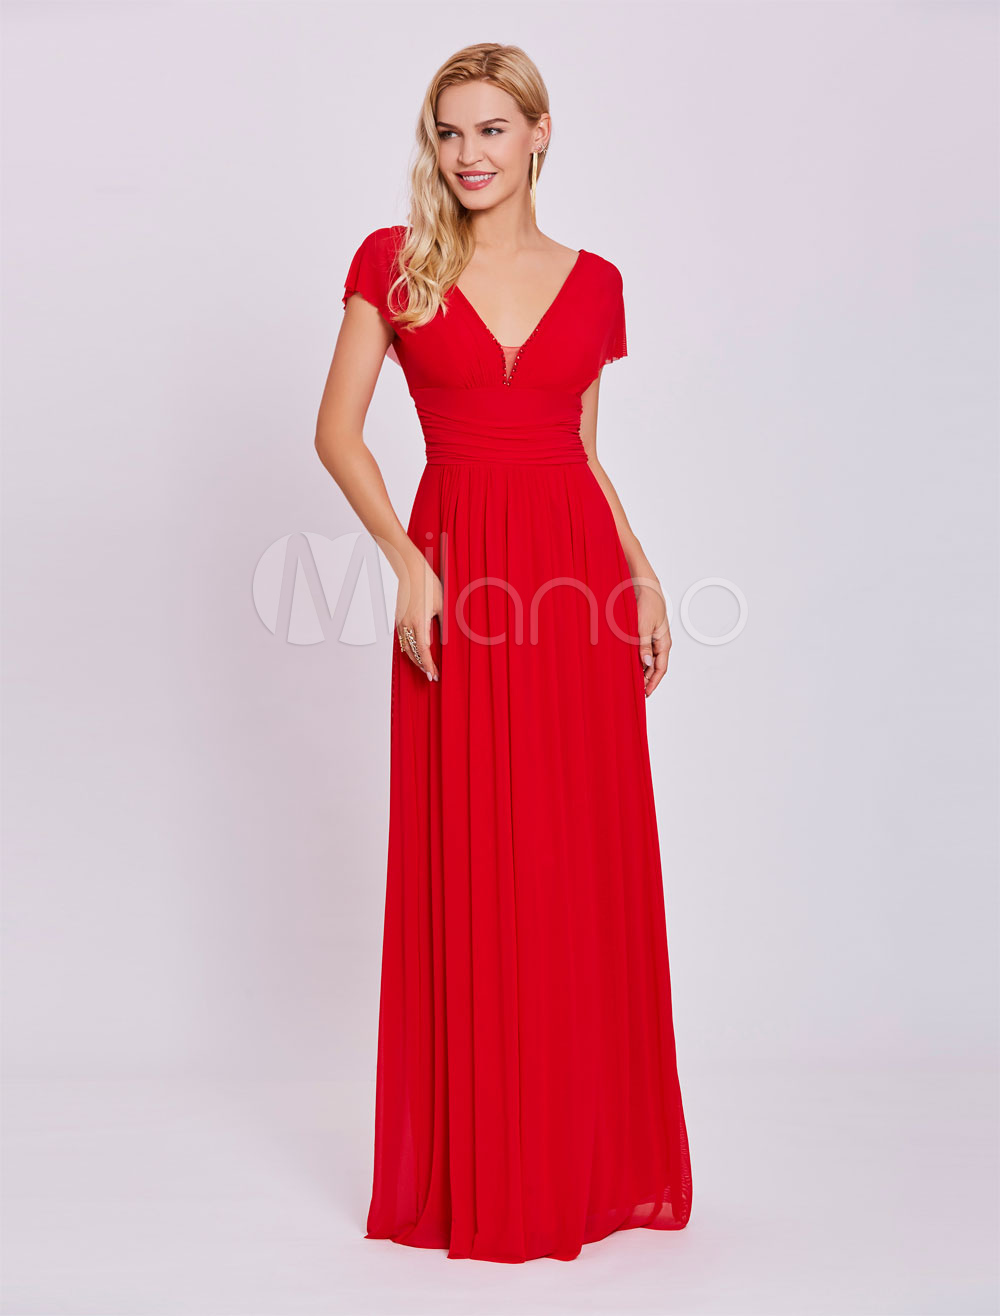 Buy Red Prom Dresses 2018 Long Chiffon V Neck Evening Dress Short Sleeve Floor Length Formal Gowns for $70.39 in Milanoo store